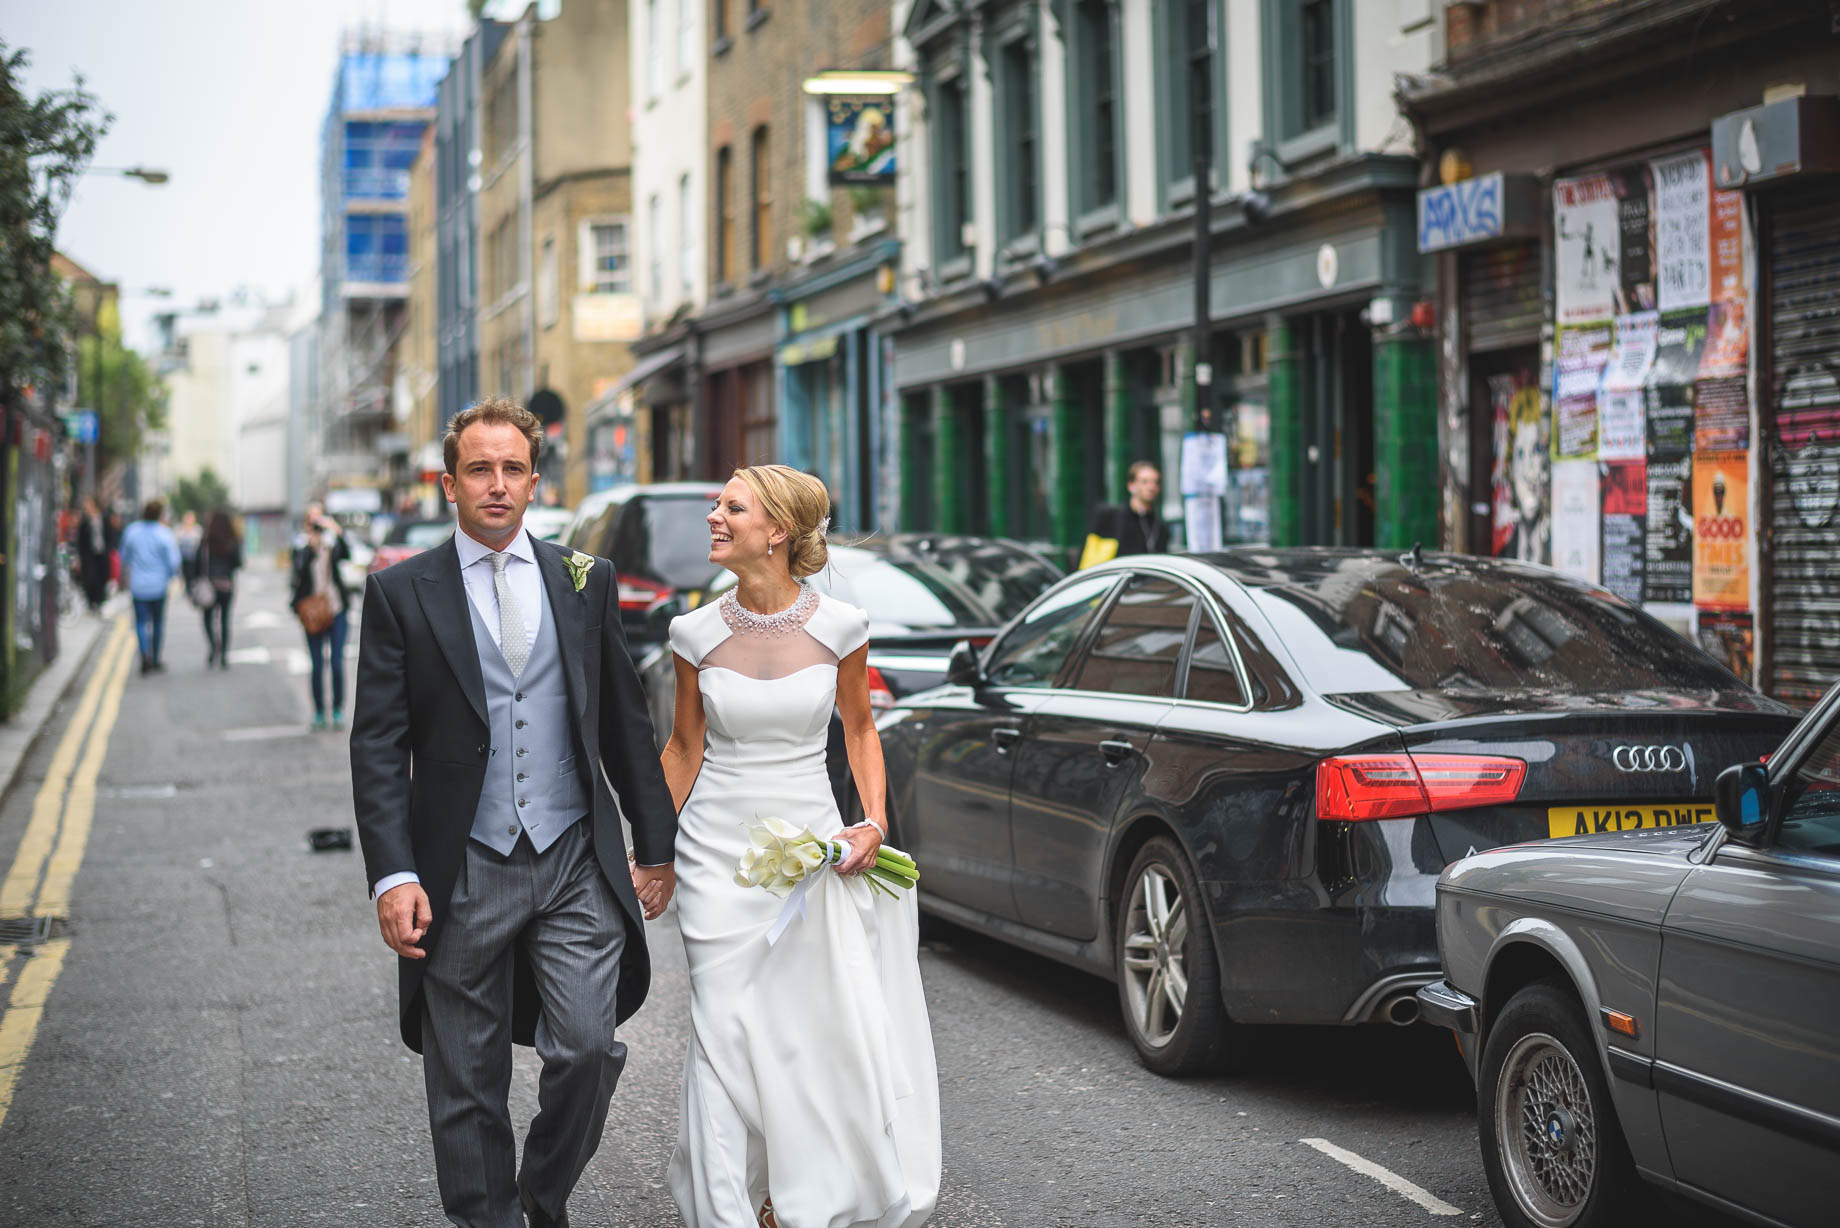 Shoreditch wedding photography - Guy Collier - Kat and Henry (123 of 200)